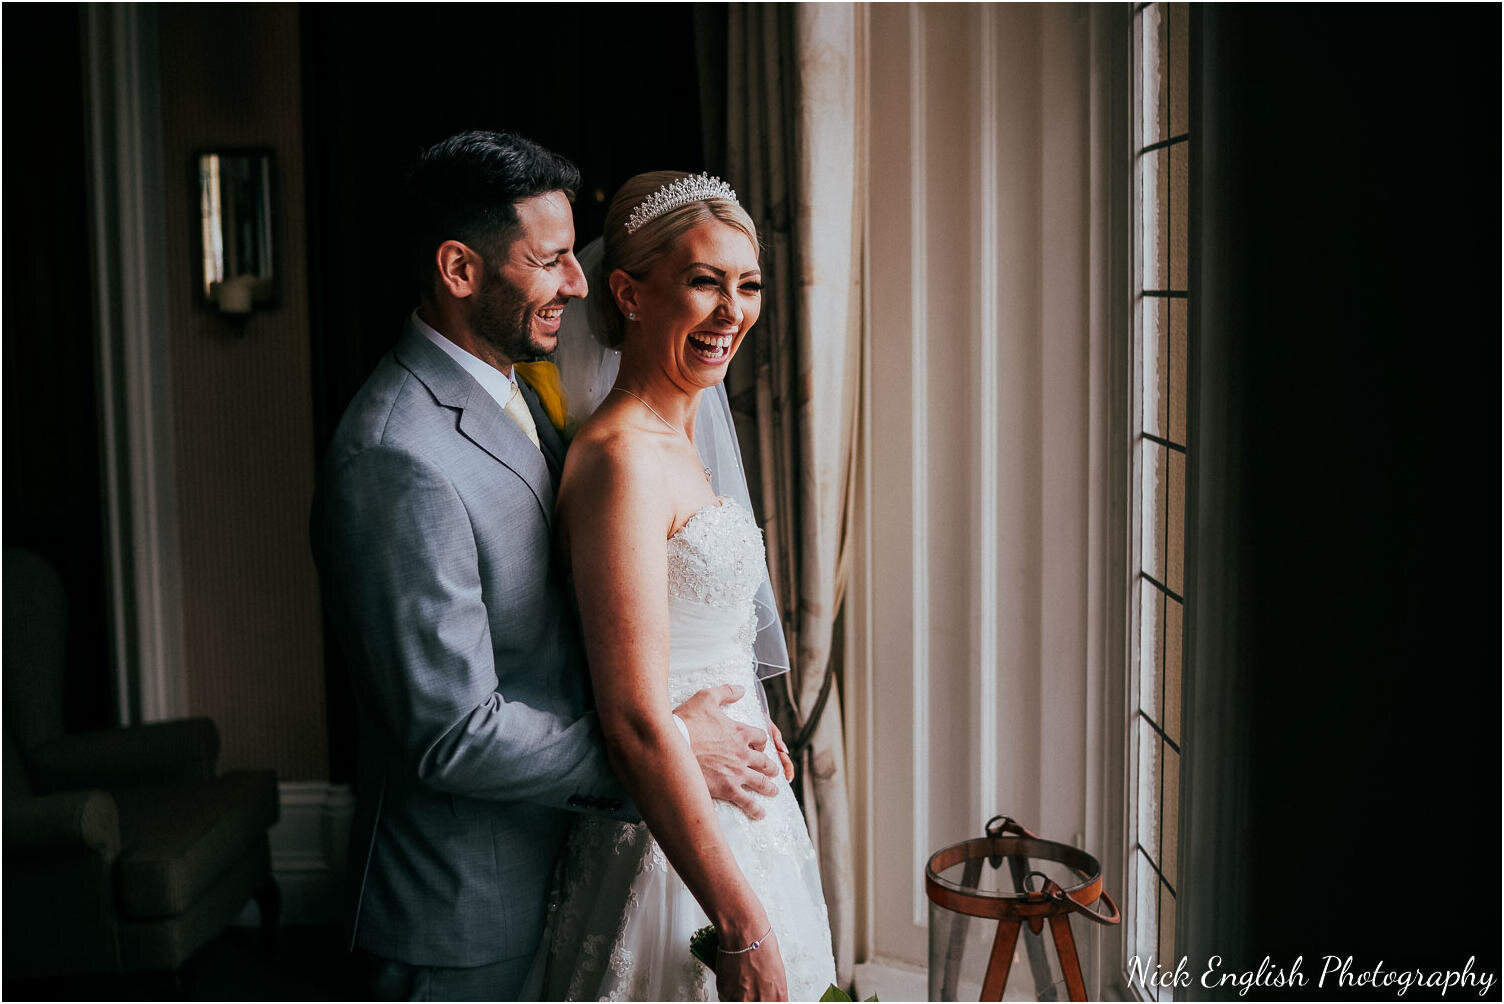 Falcon_Manor_Yorkshire_Wedding_Photographer-65.jpg